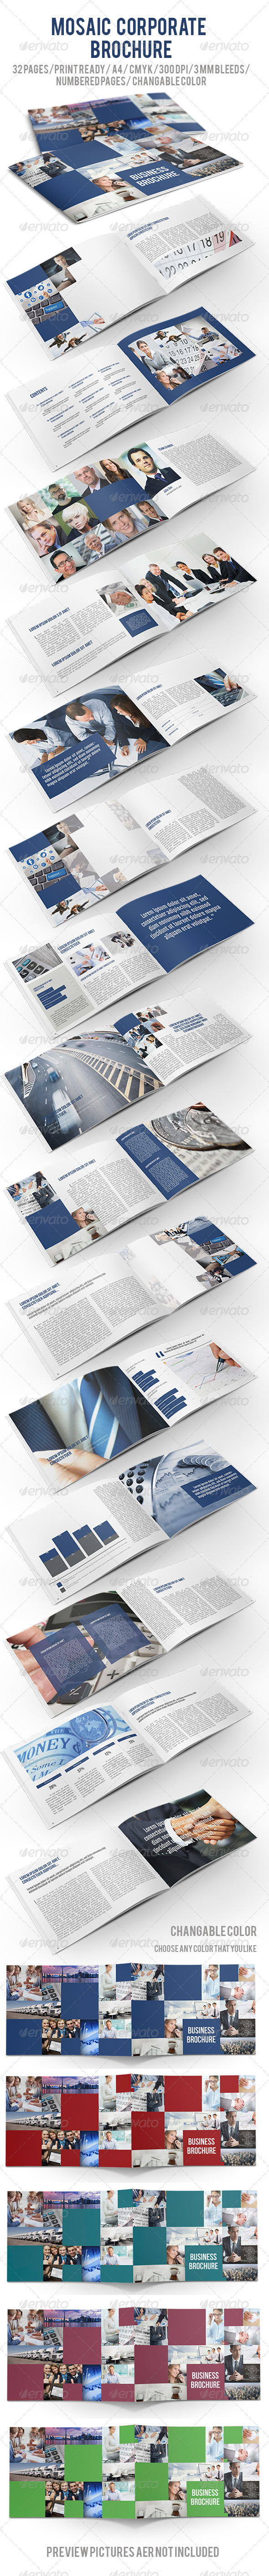 GraphicRiver Mosaic Corporate Brochure 5685498